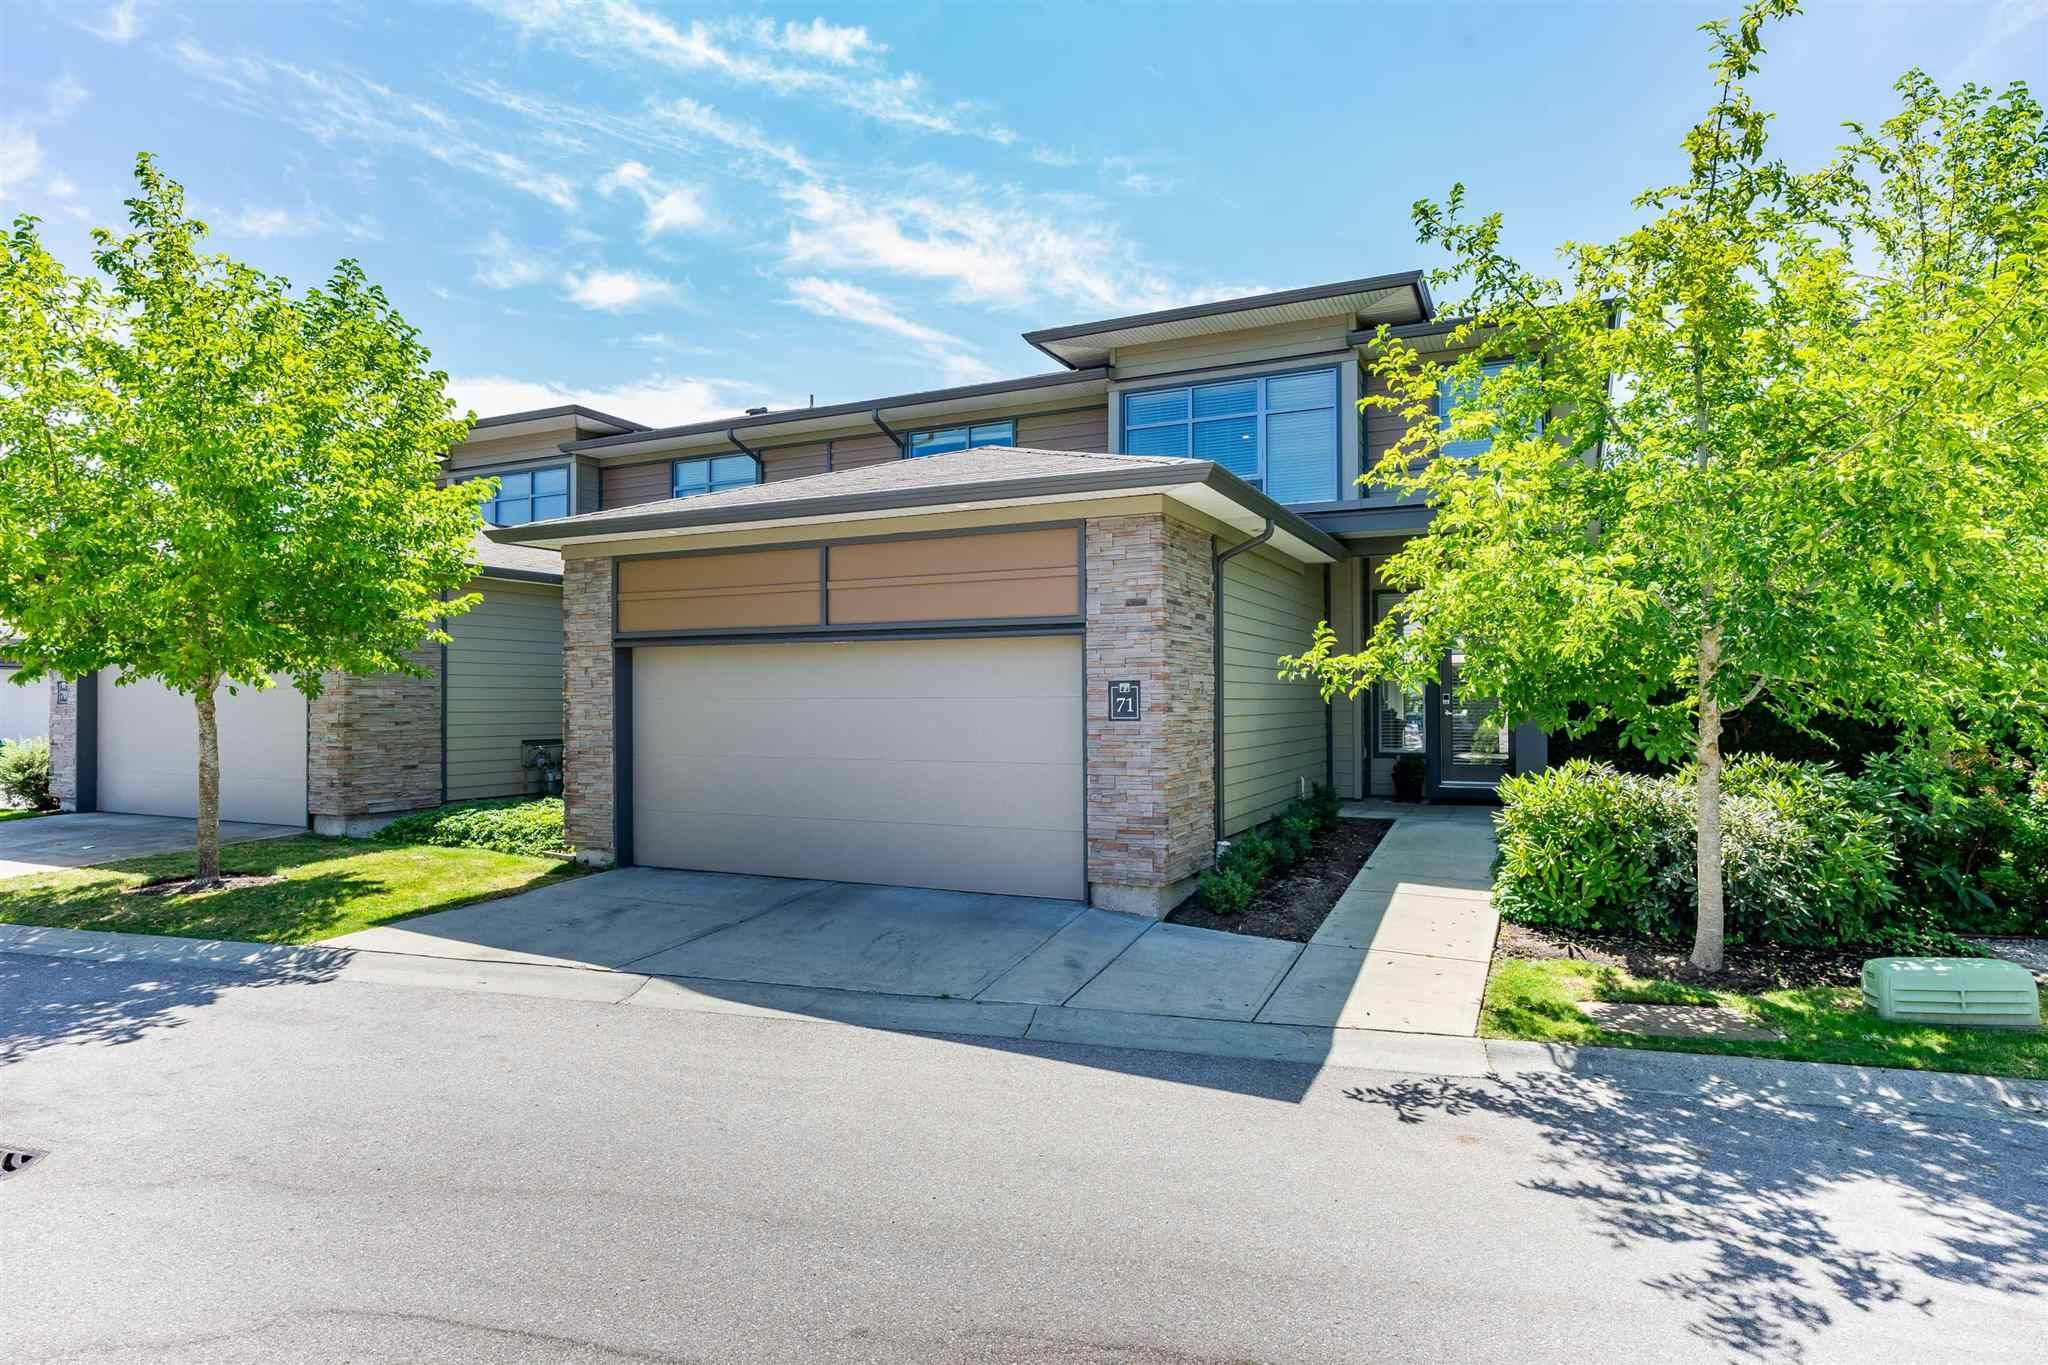 Main Photo: 71 2603 162 Street in Surrey: Grandview Surrey Townhouse for sale (South Surrey White Rock)  : MLS®# R2606237